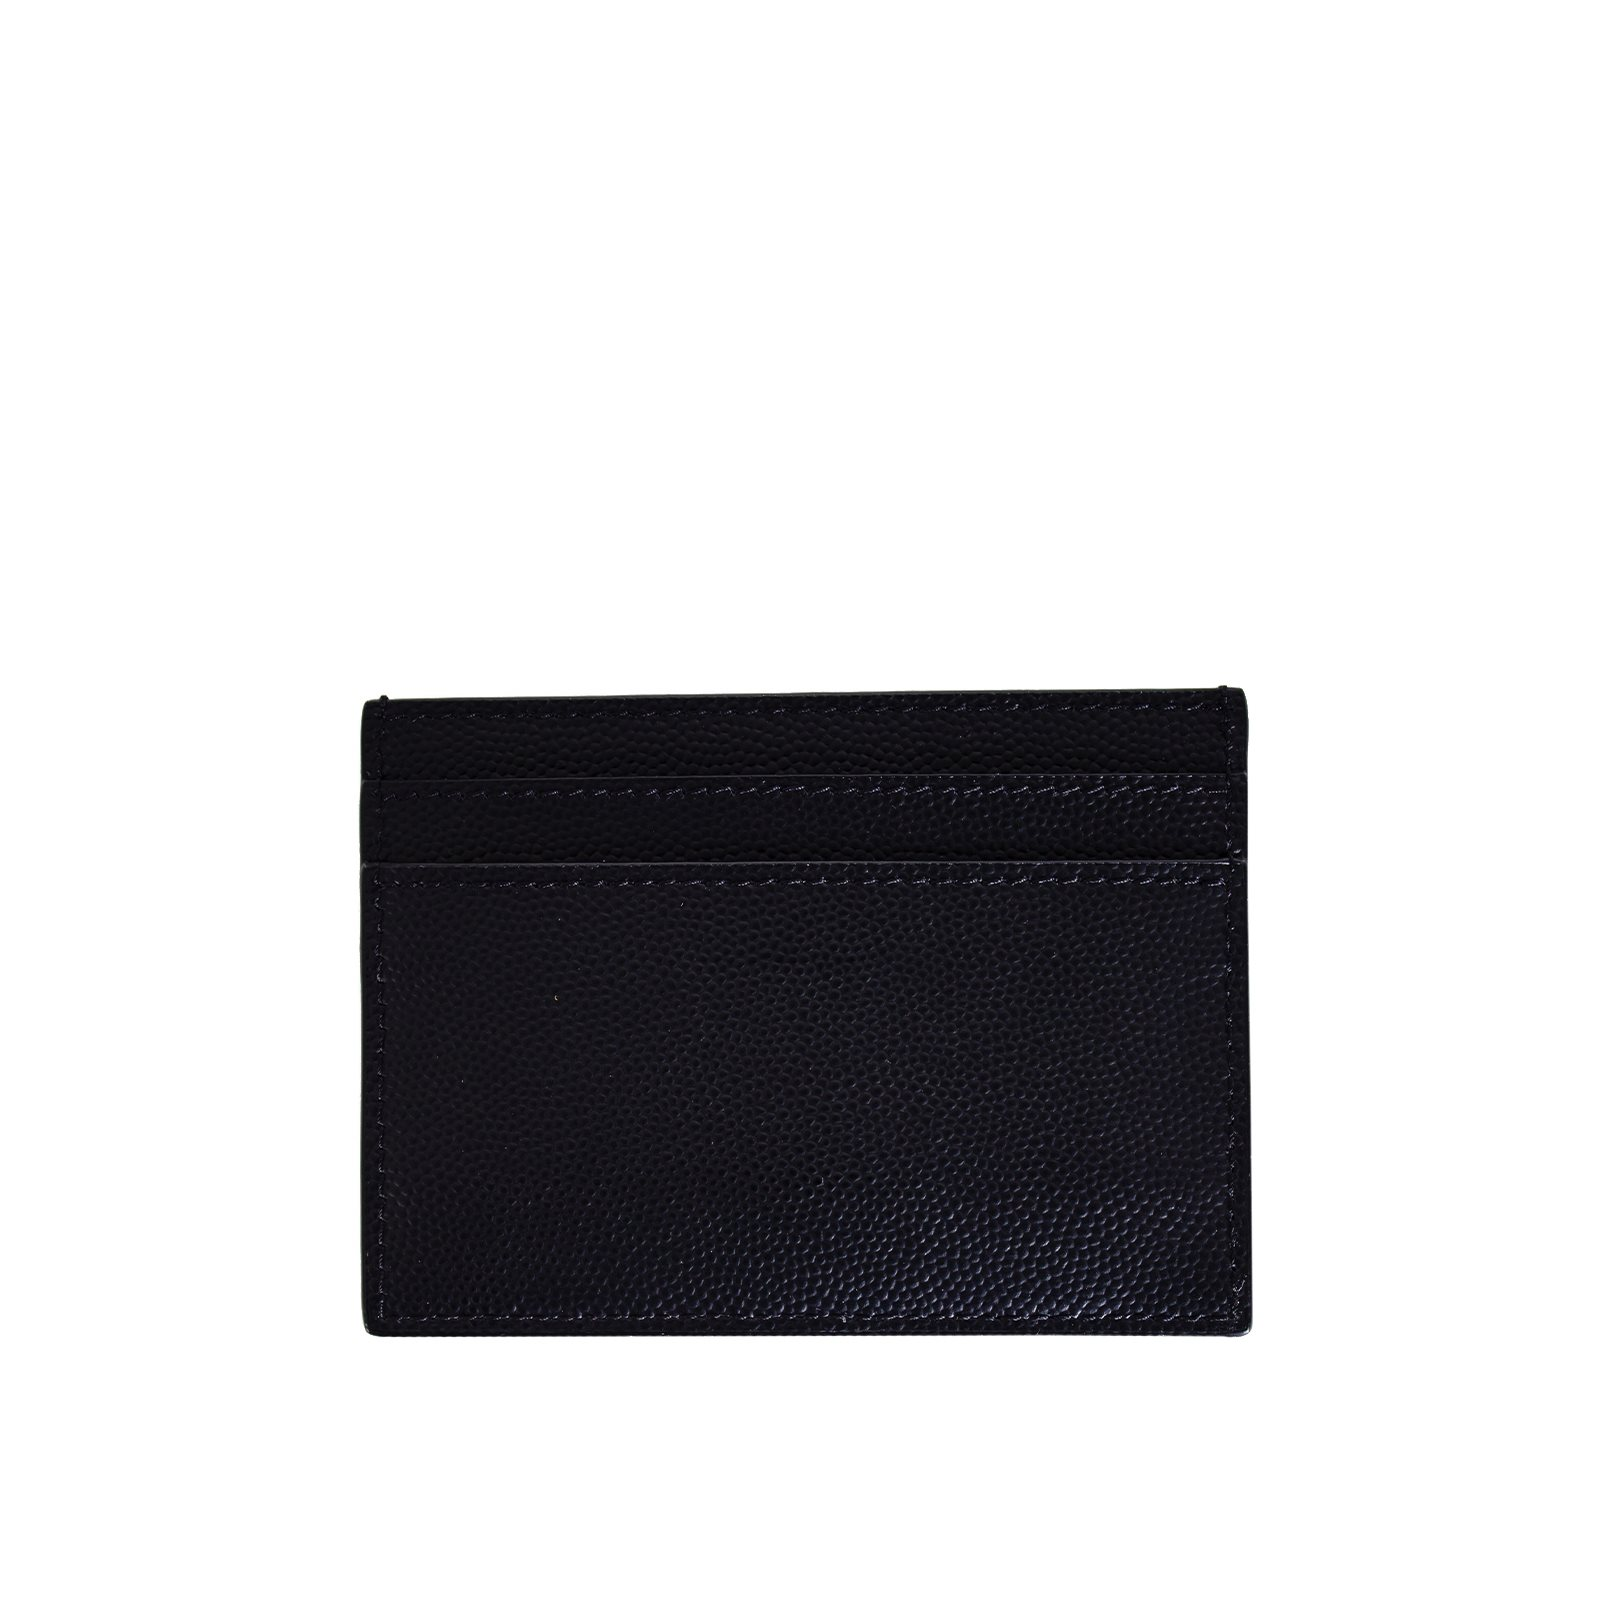 Saint LaurentParis Card Holder 2